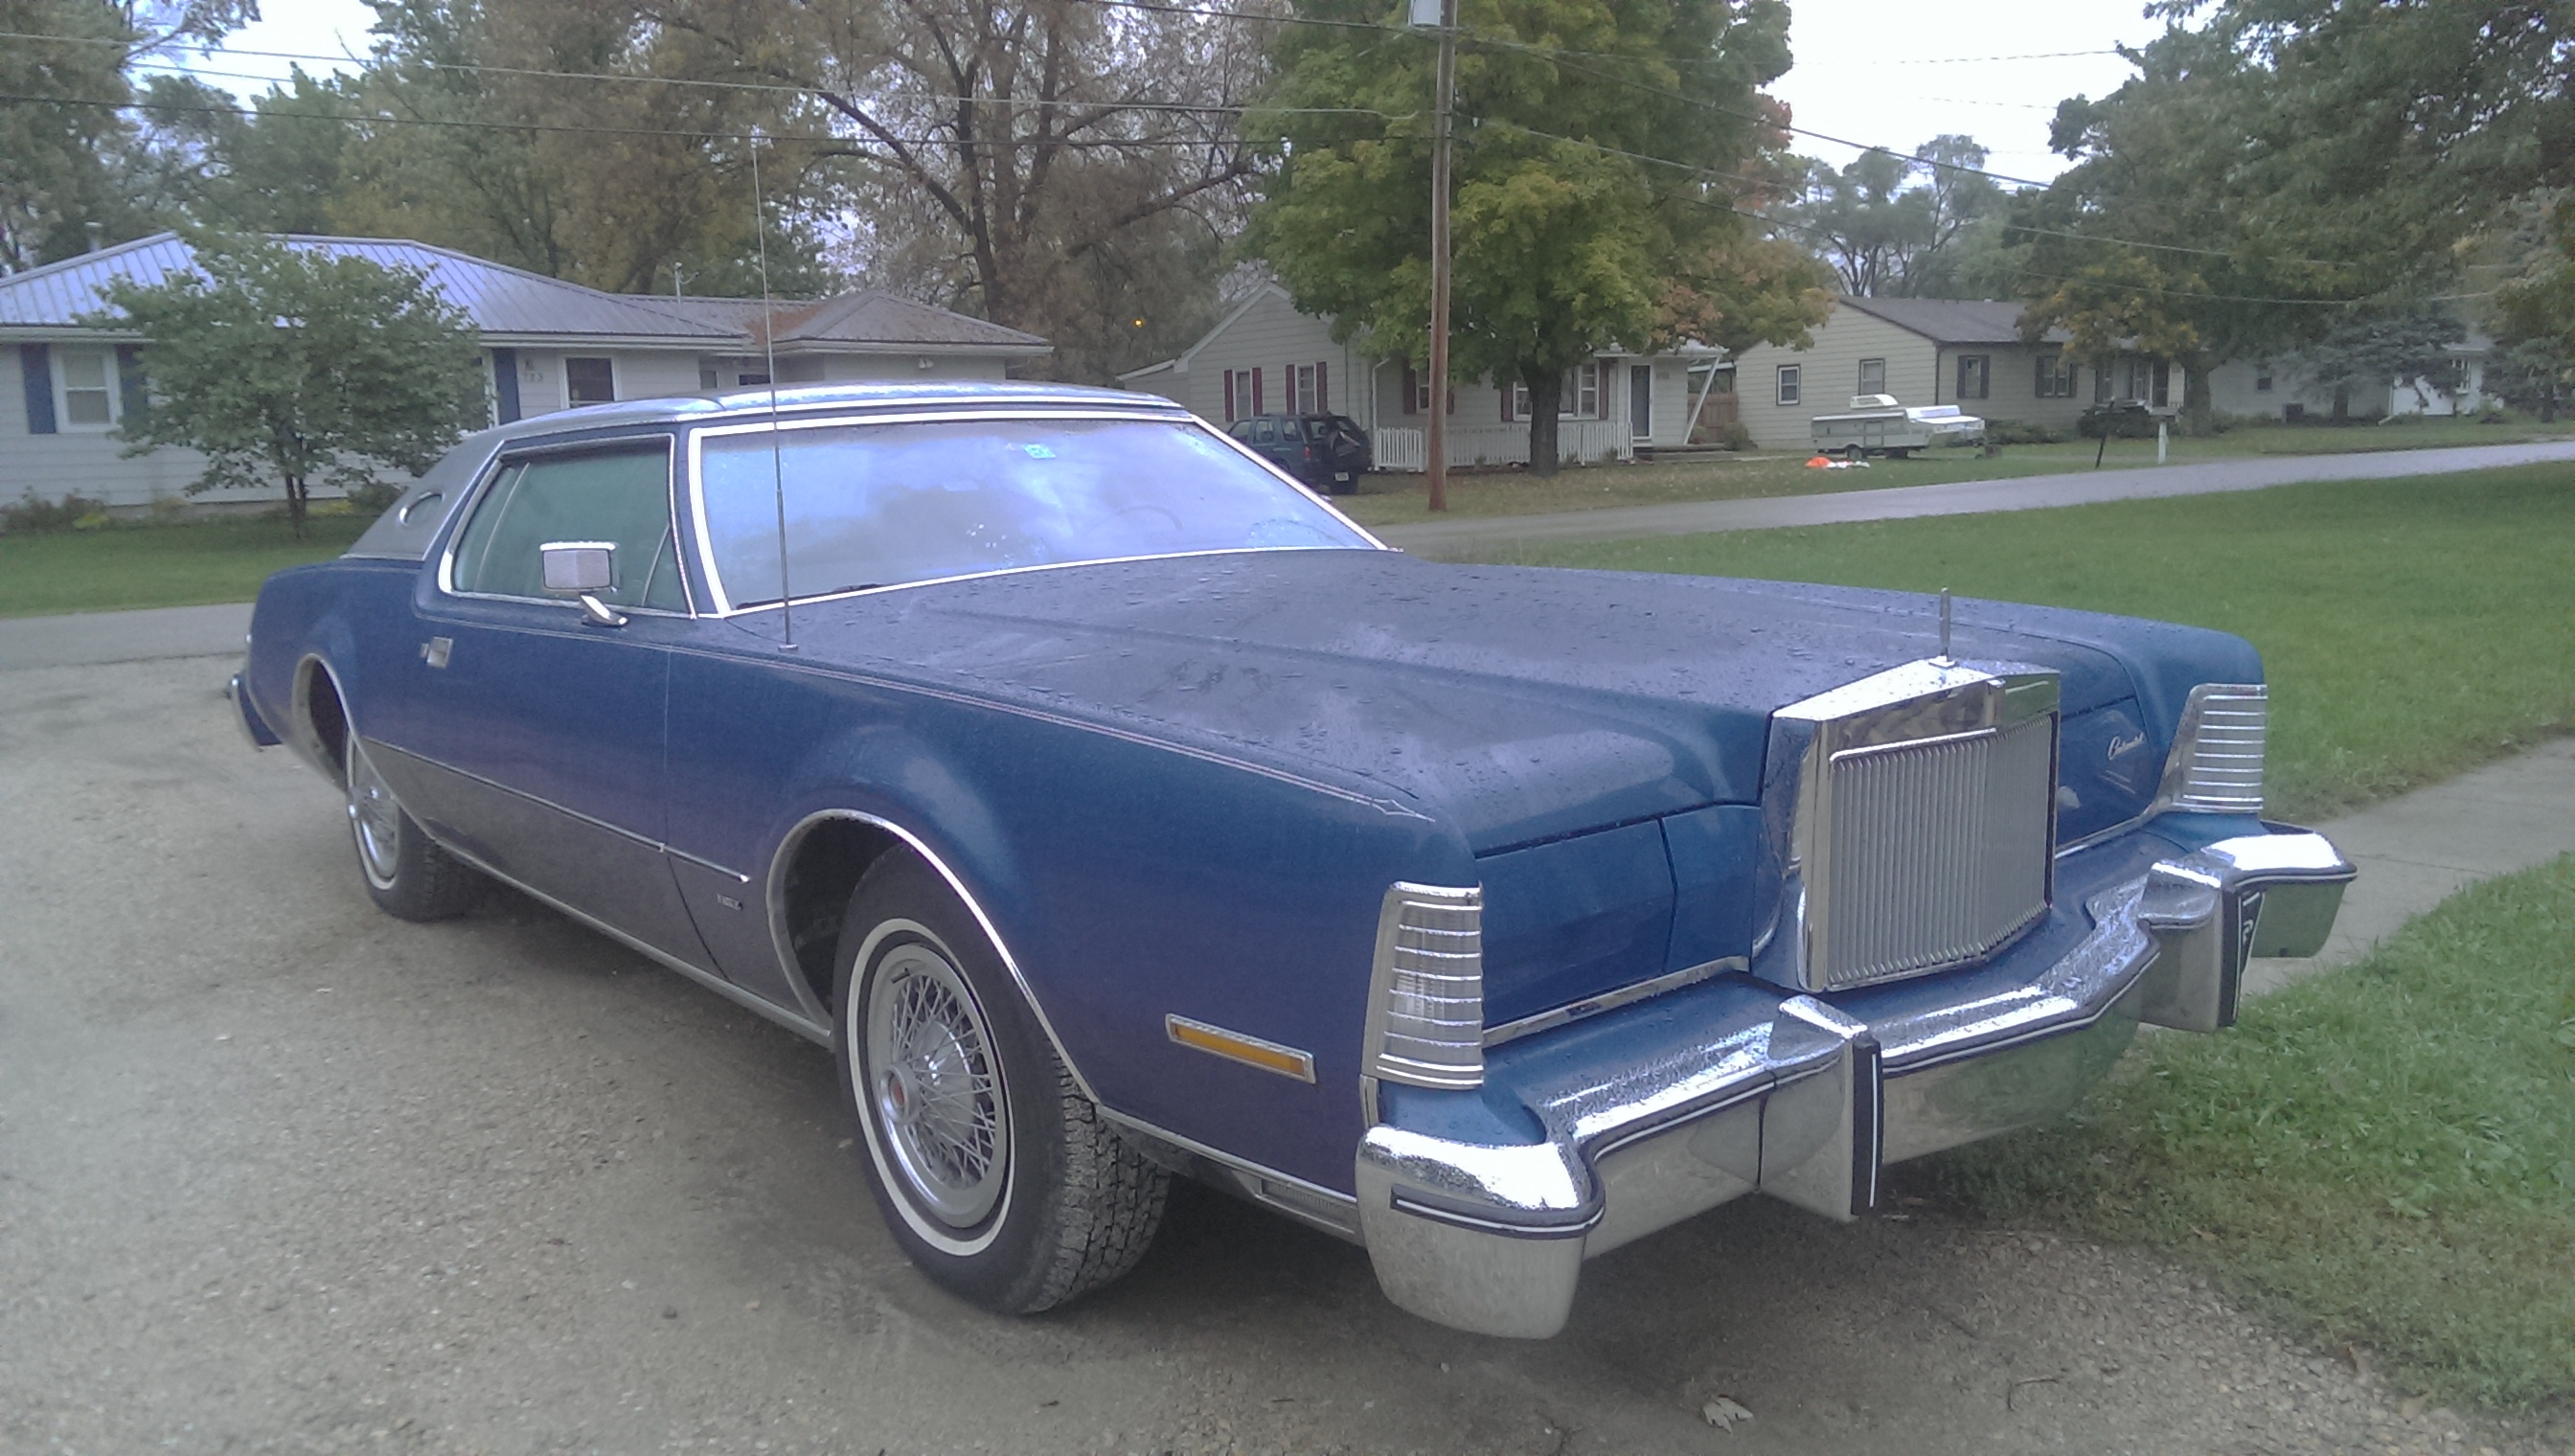 This is my 75 Lincoln Continental Mark IV (4) This actually happens to be my first car im only 15. I love this car its got the big block 460 and it just moves even when weighing 5200 pounds! - 19087070